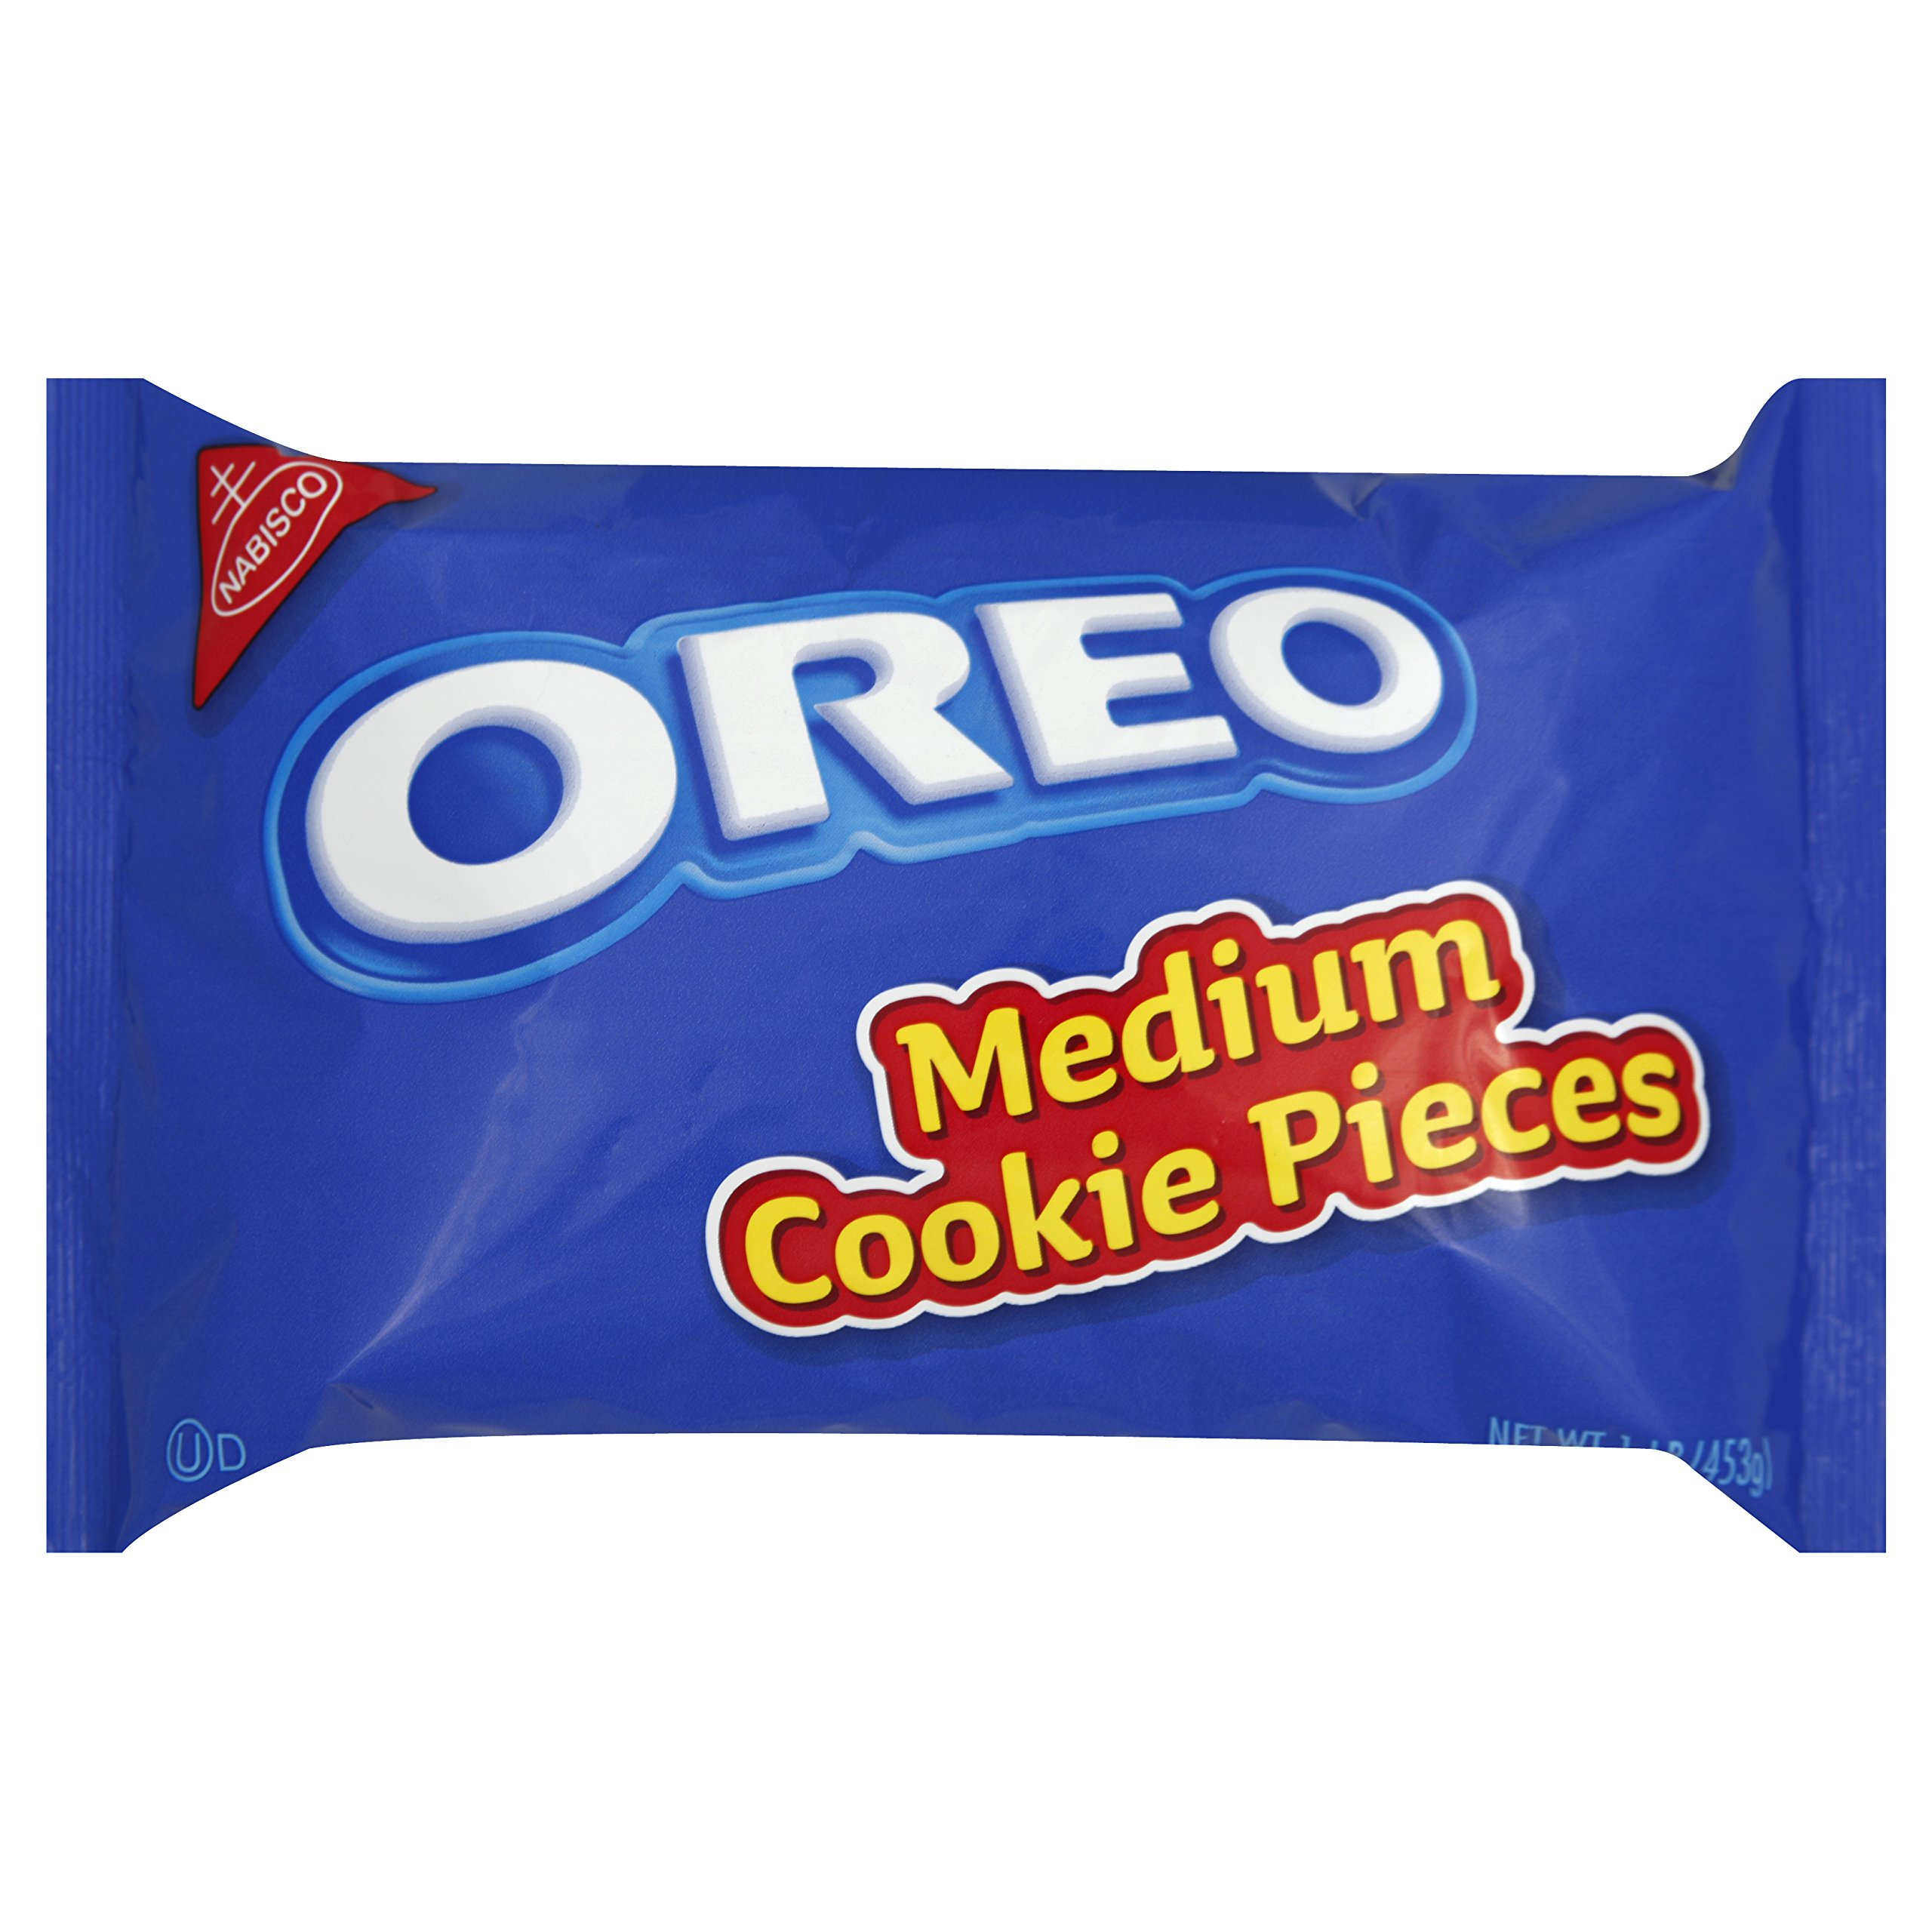 Oreo Cookies Pieces, Medium, 16-Ounce Packages (Pack of 12)